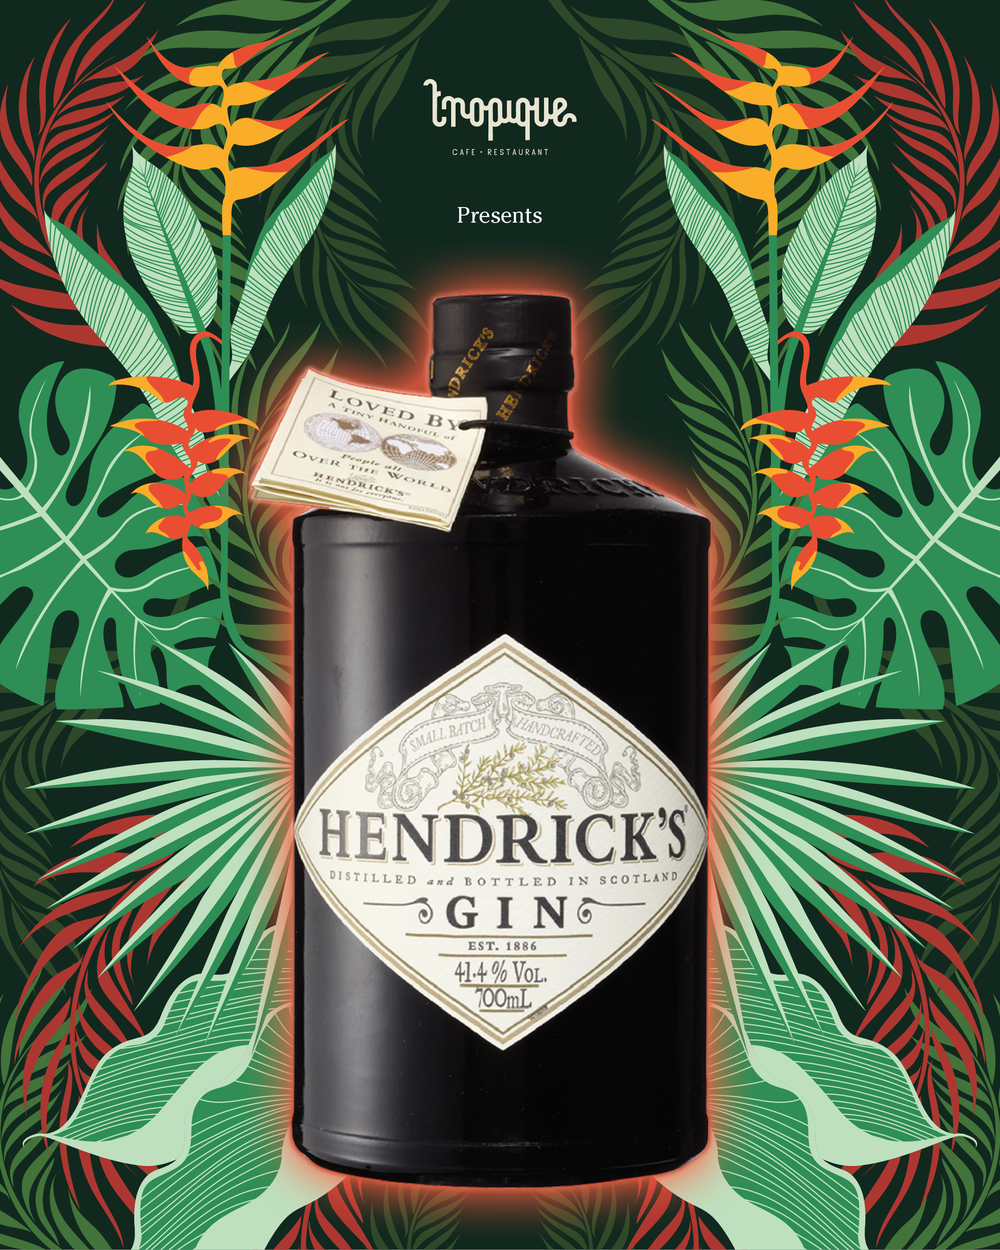 Hendricks-Gin_Tropique=Cafe-and-Restaurant.png